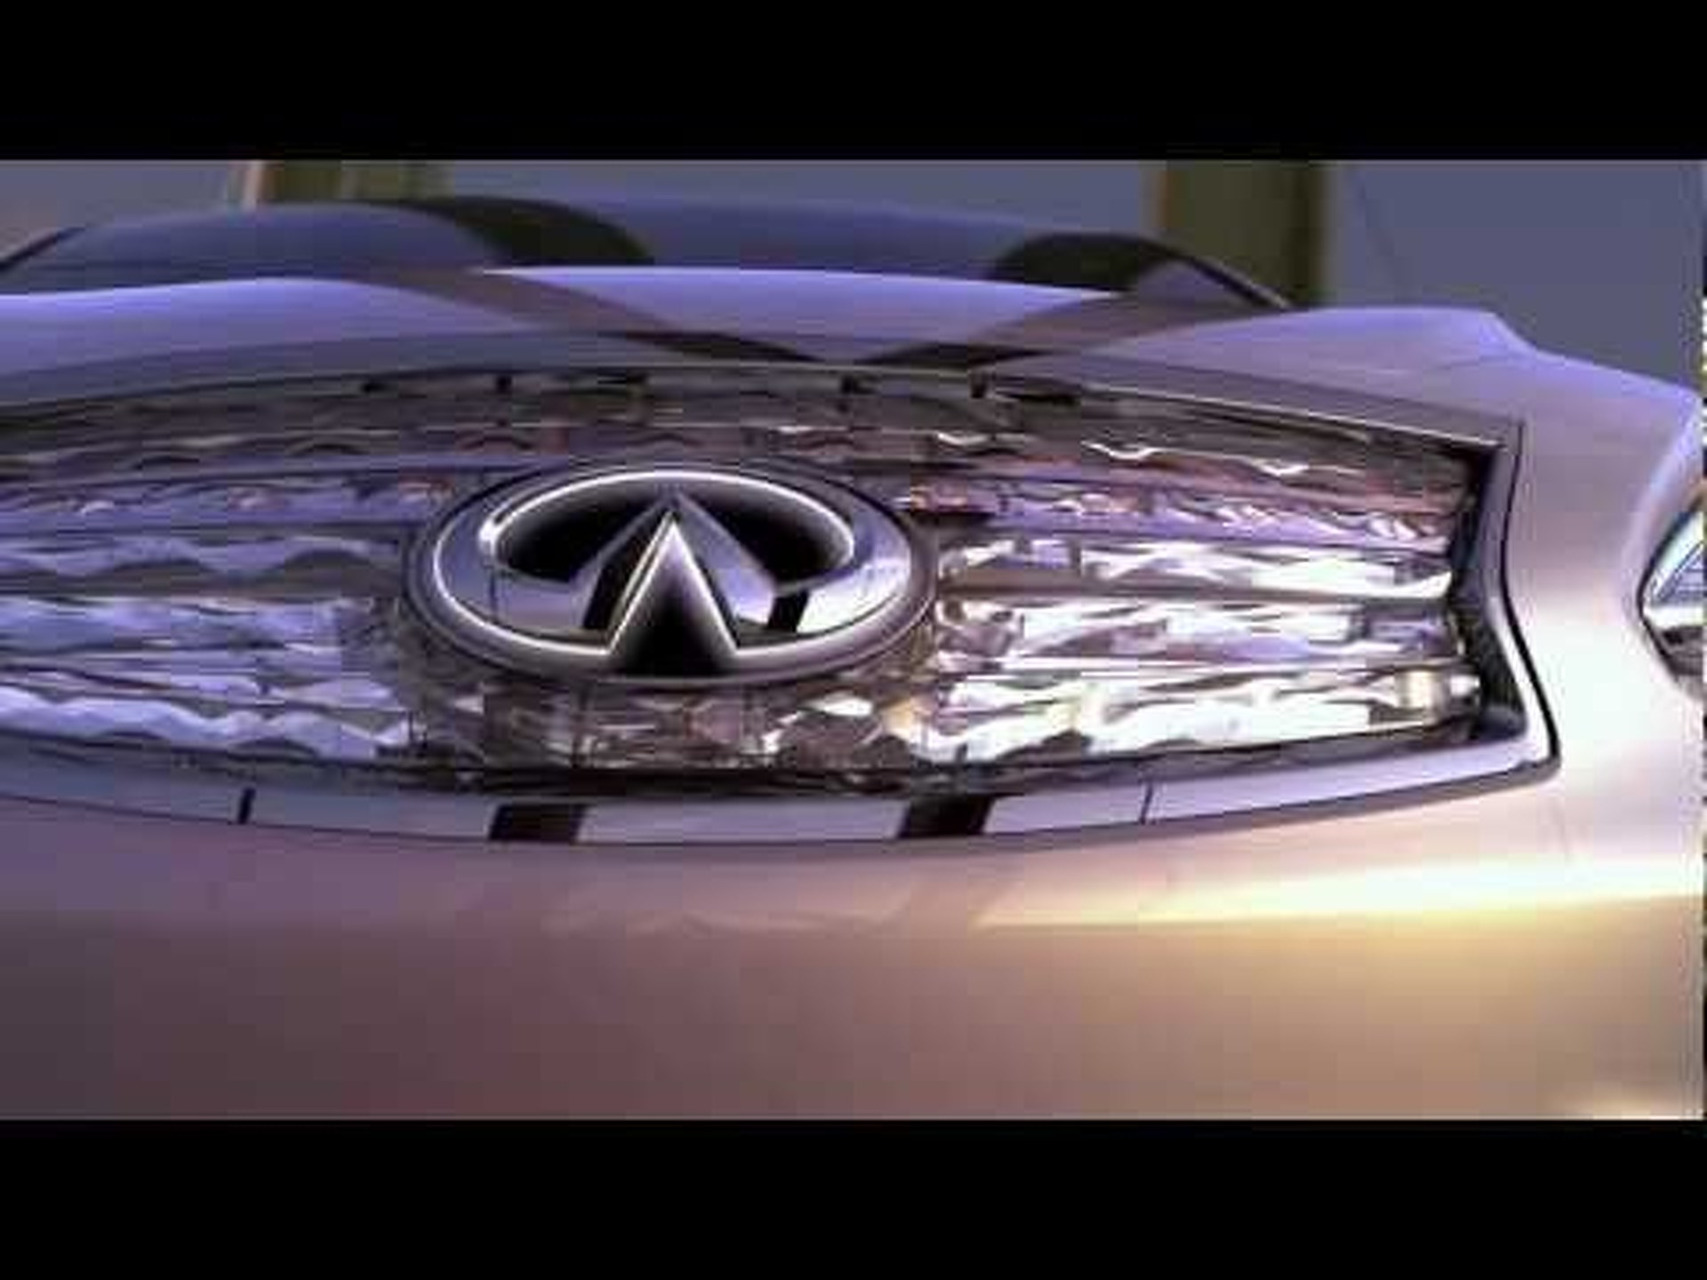 2012 infiniti le concept running footage motor1 photos 2012 infiniti le concept running footage vanachro Image collections